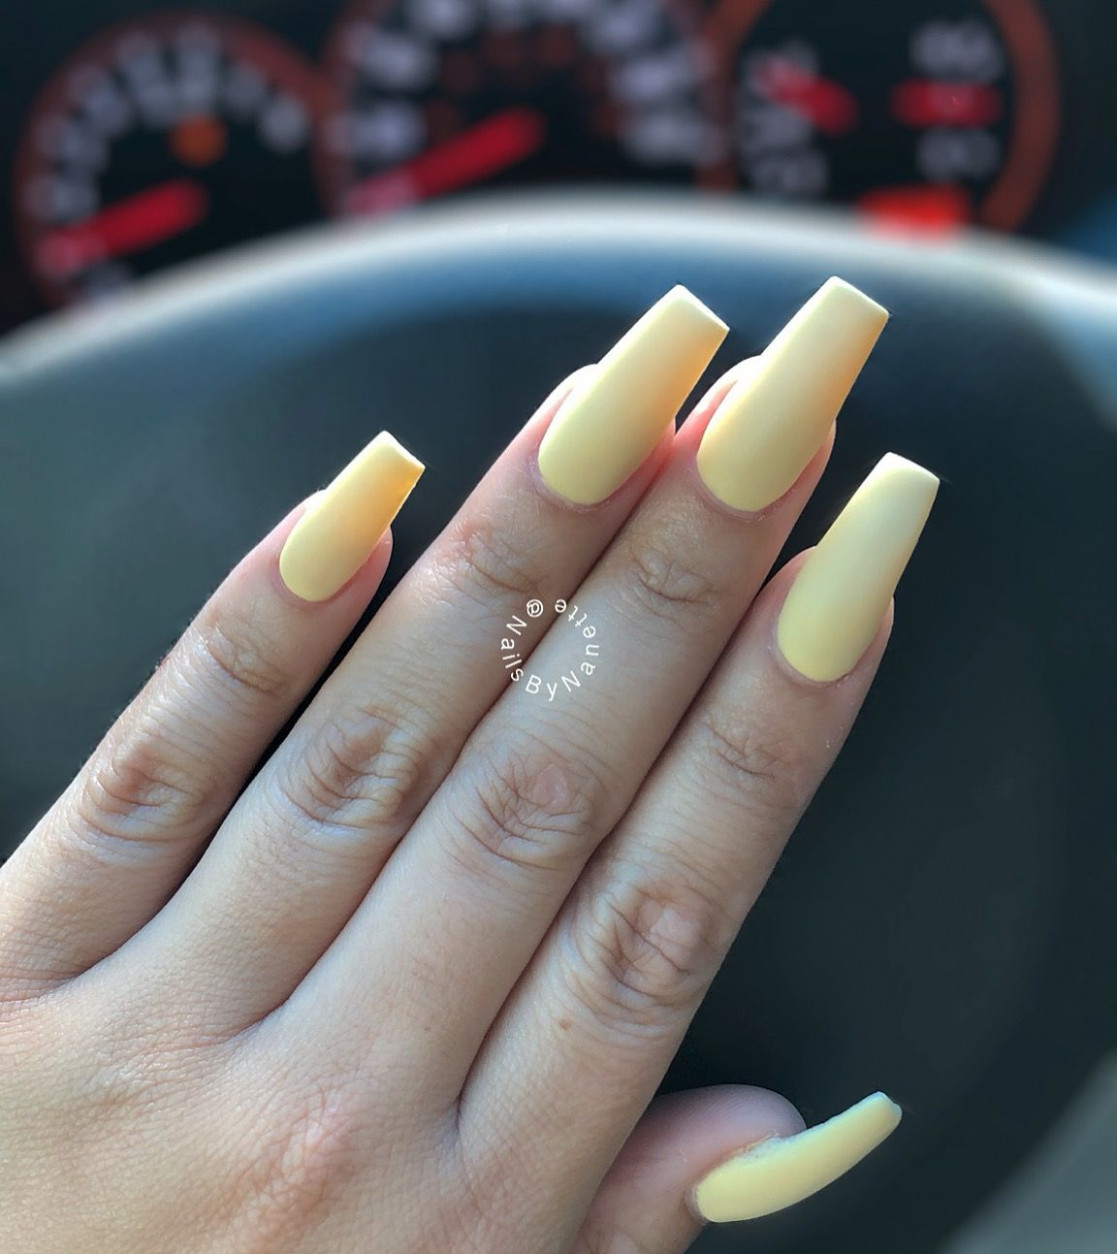 Pastel yellow matted coffin or ballerina nails in medium length